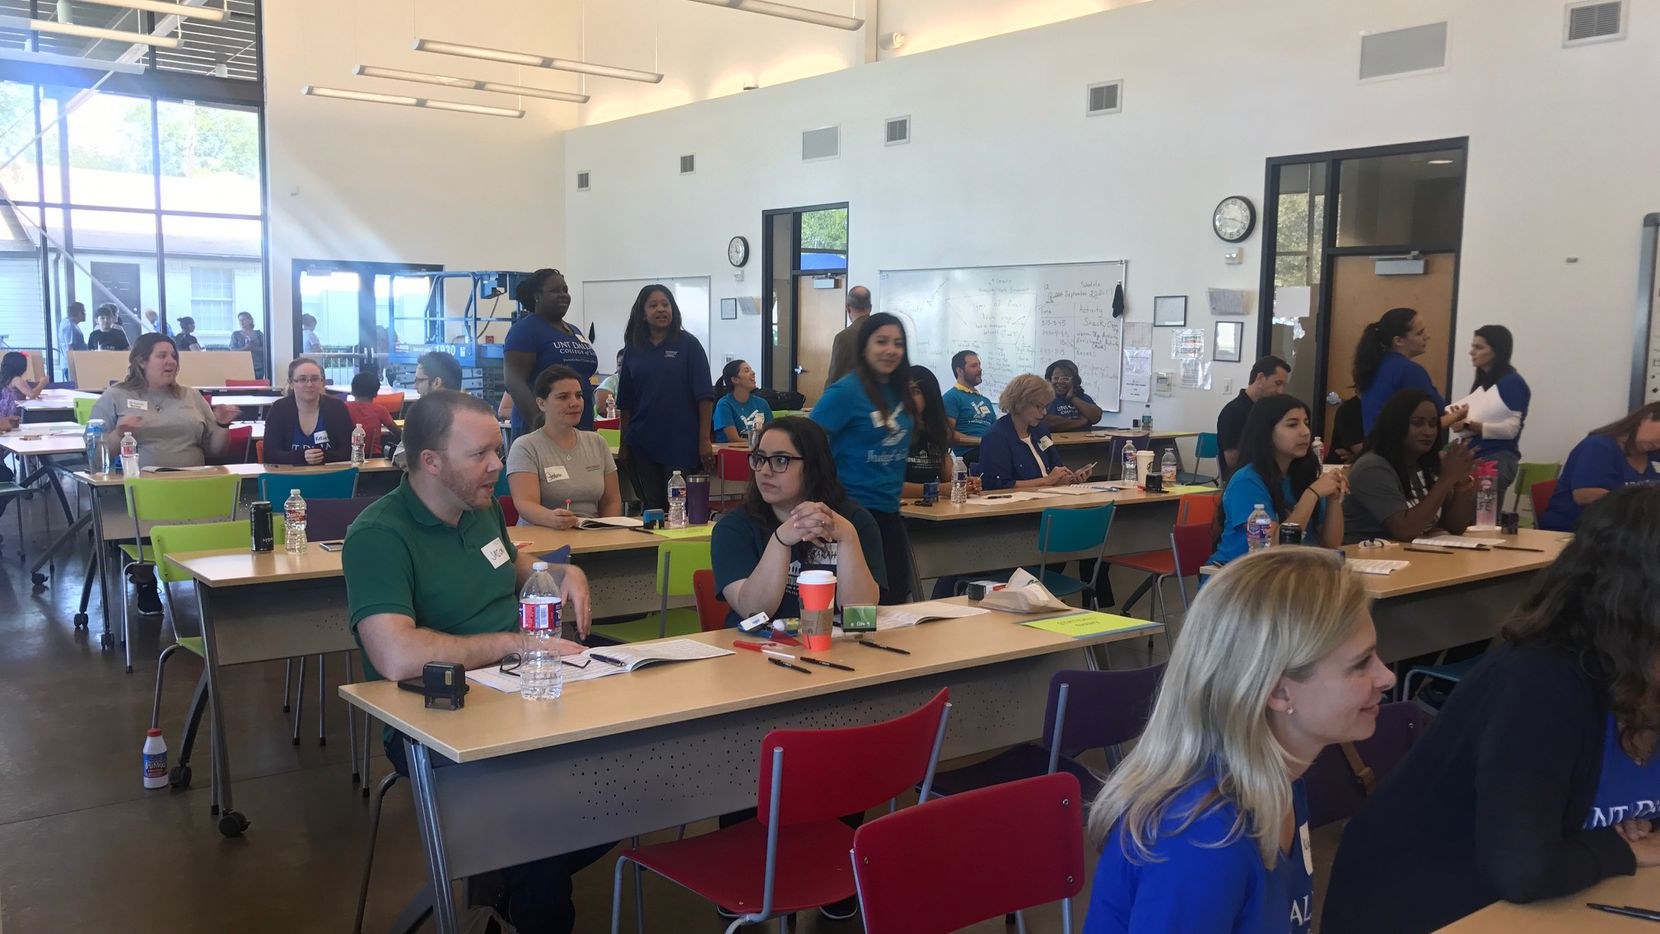 The University of North Texas at Dallas' College of Law held a power-of-attorney session at Jubilee Park Community Center in September. (Elvia Limon/Staff)